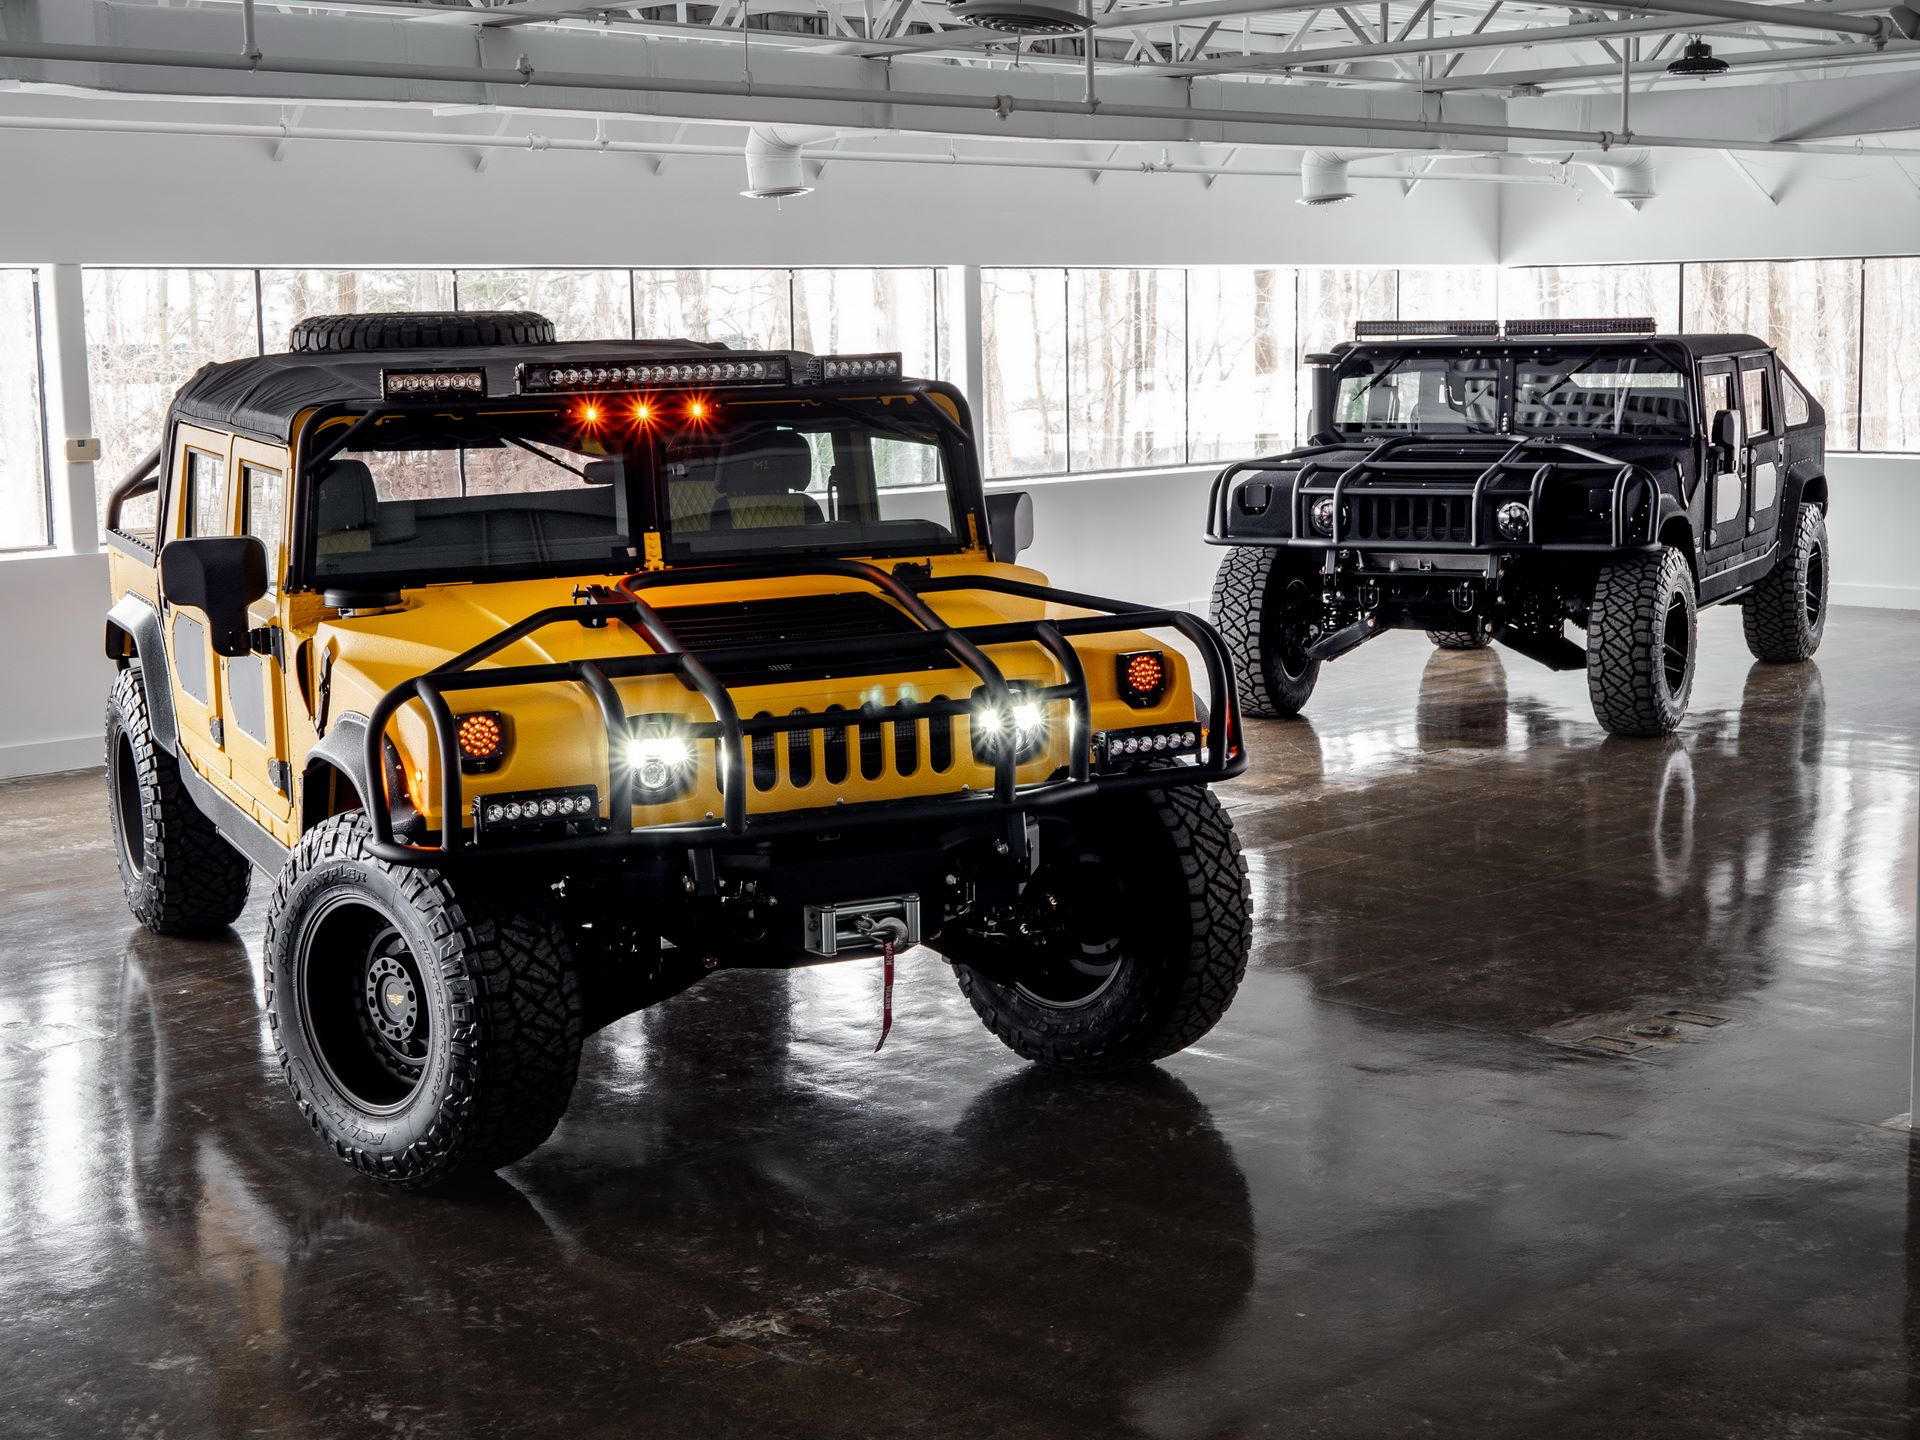 Hummer-M1-R-by-Mil-Spec-29